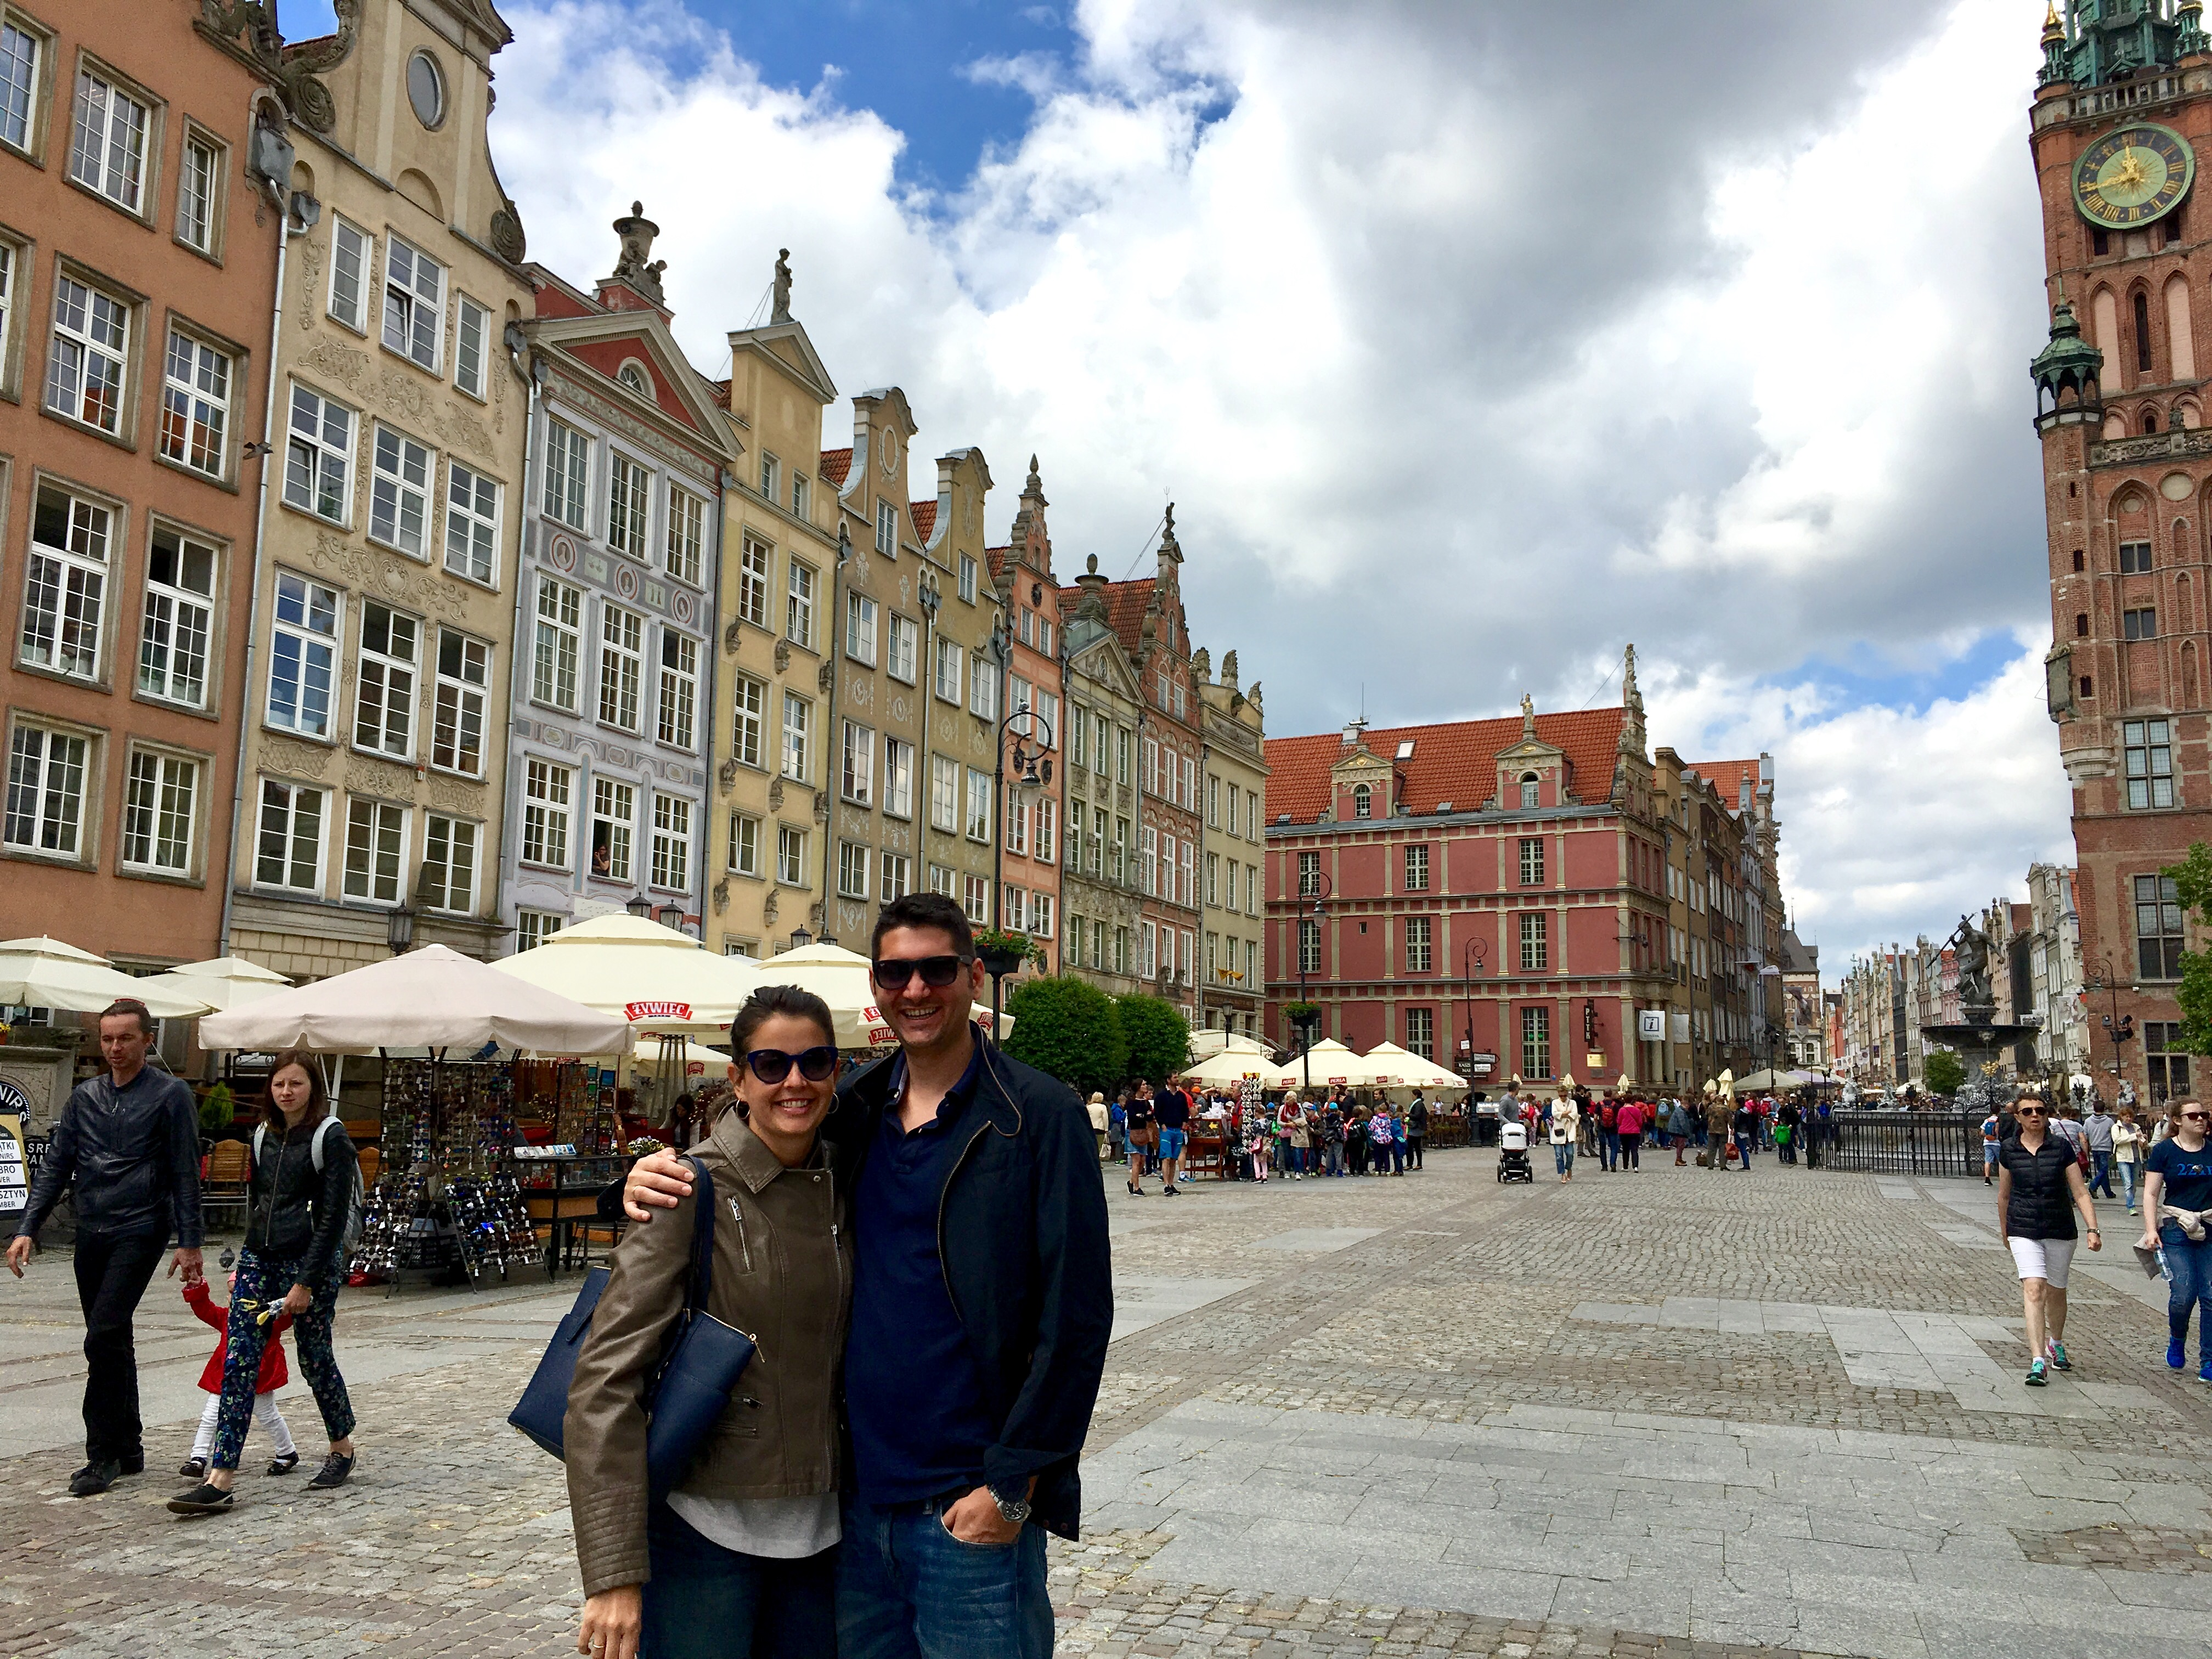 Gdansk, Poland : History, Pierogi and Vodka